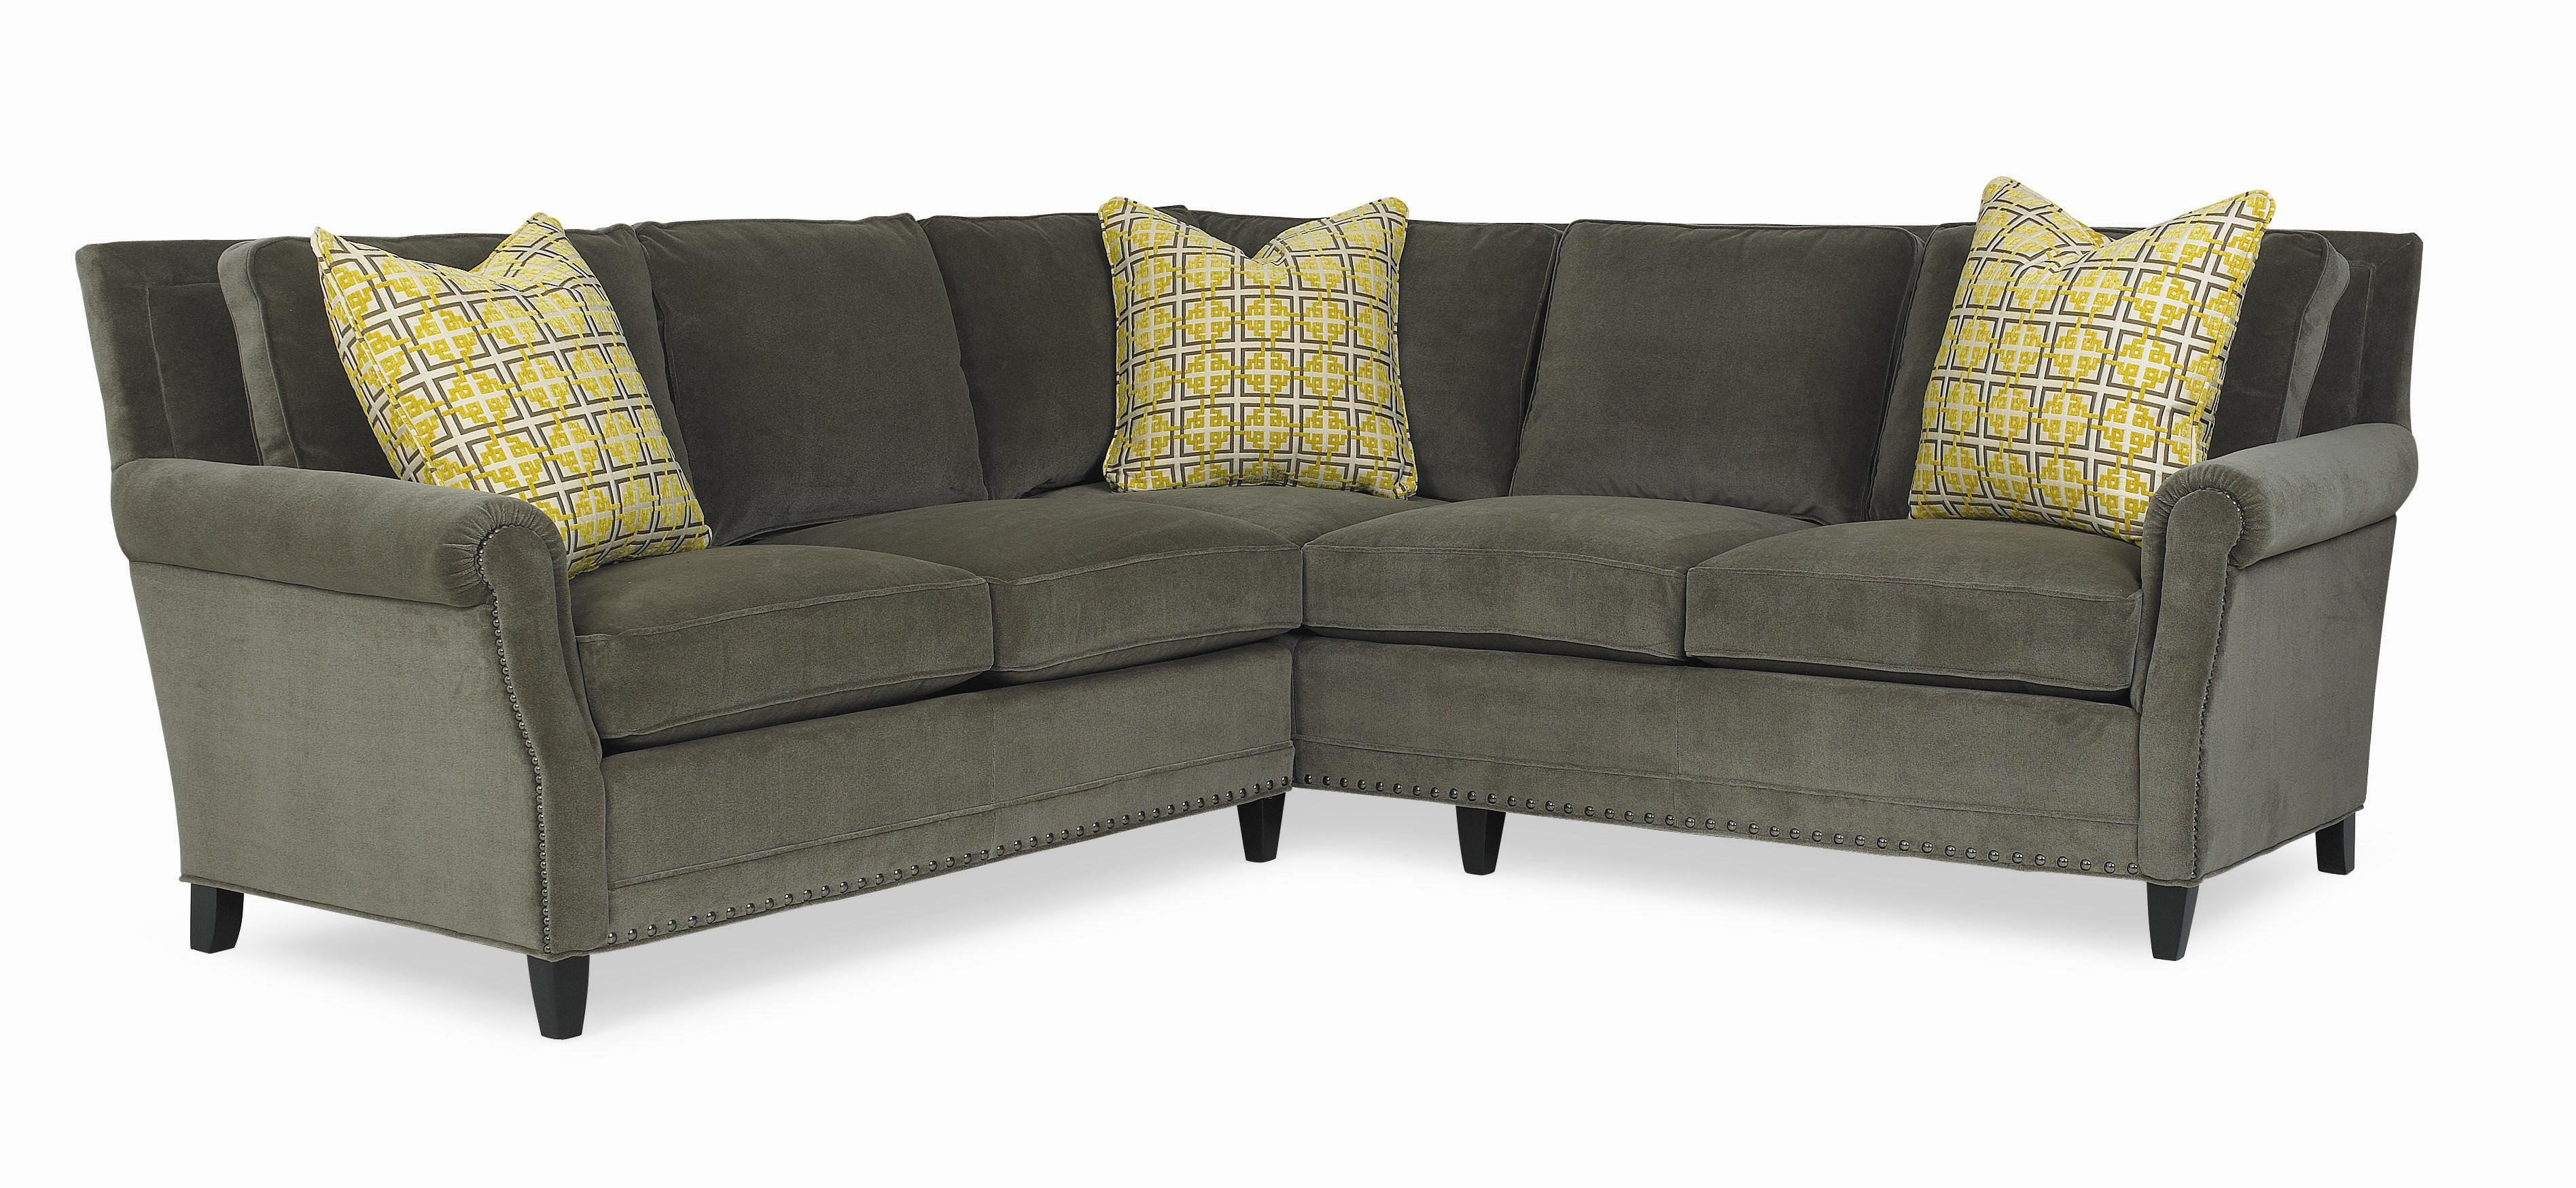 C R Laine Leighton Sectional Sofa With Accent Pillows and